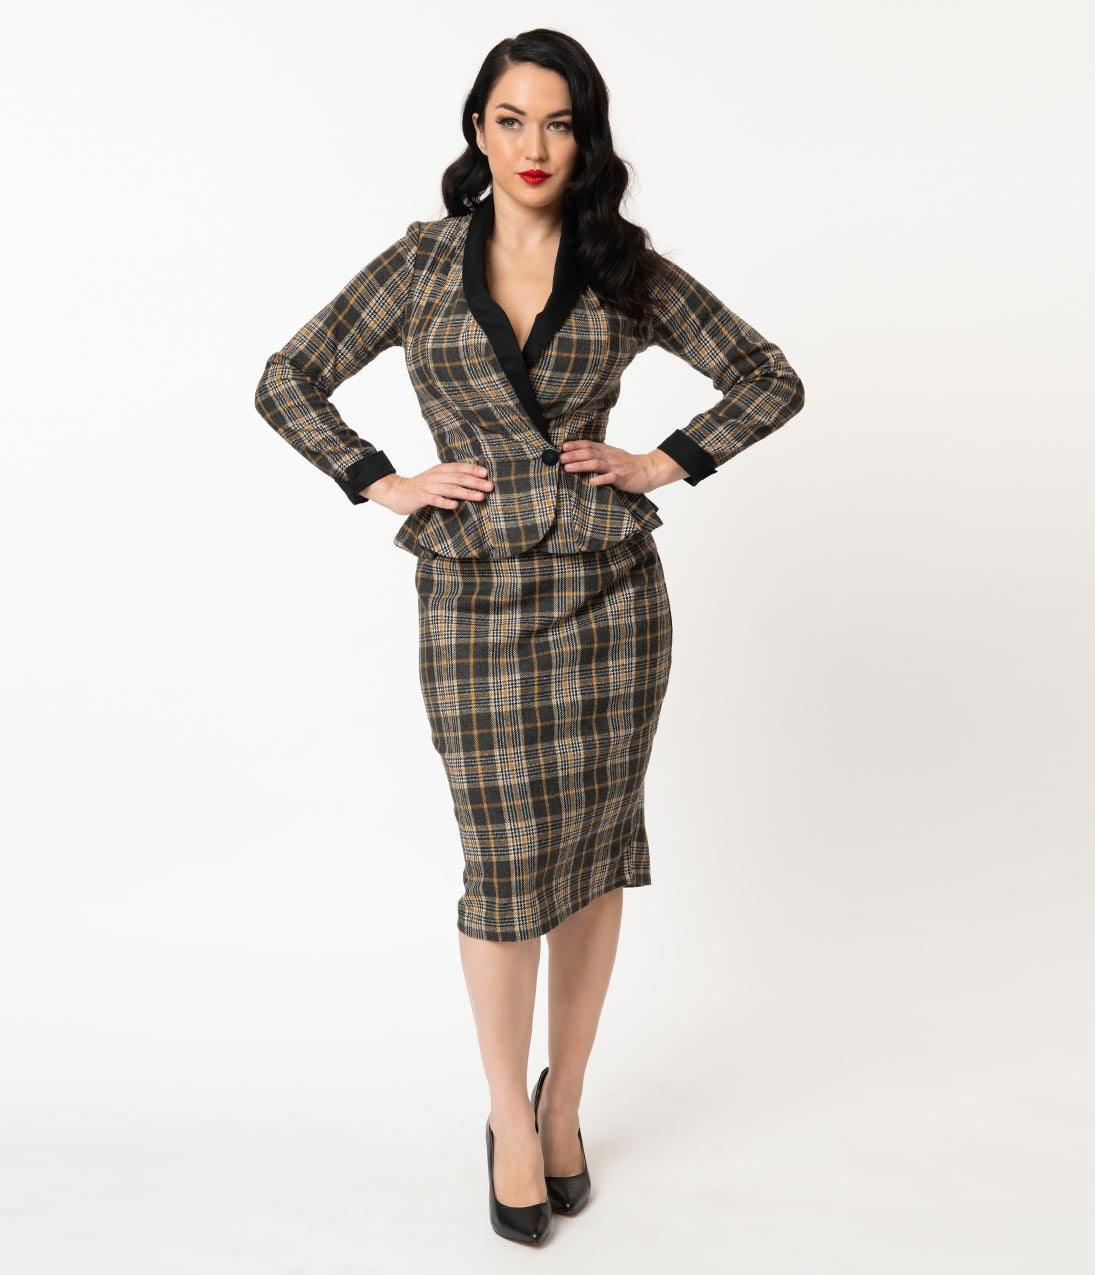 323c07fd85 Vintage Suits Women | Work Wear & Office Wear 1940S Grey Mustard Plaid  Woven Millie Pencil